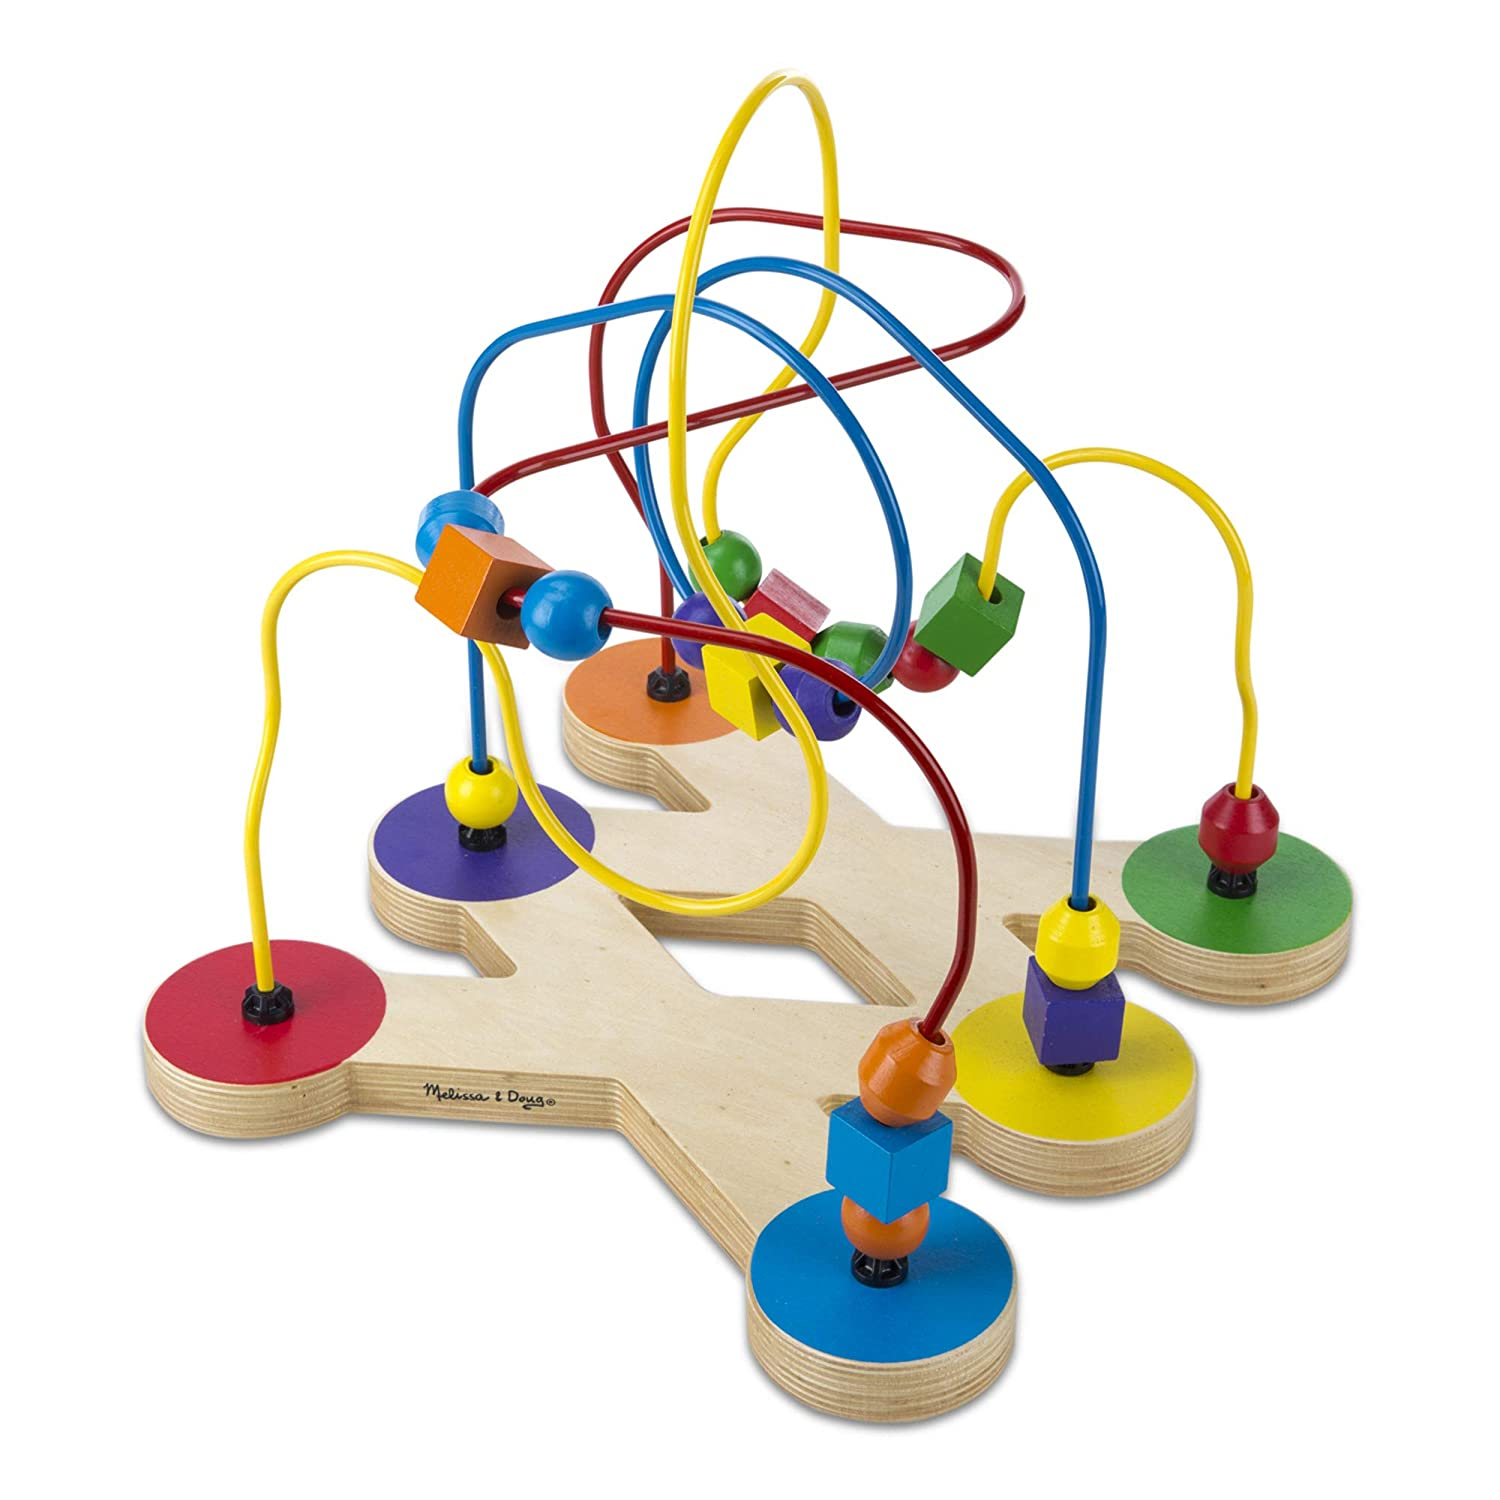 Top 7 Best Montessori Toys for 1 Year Old Reviews in 2020 4